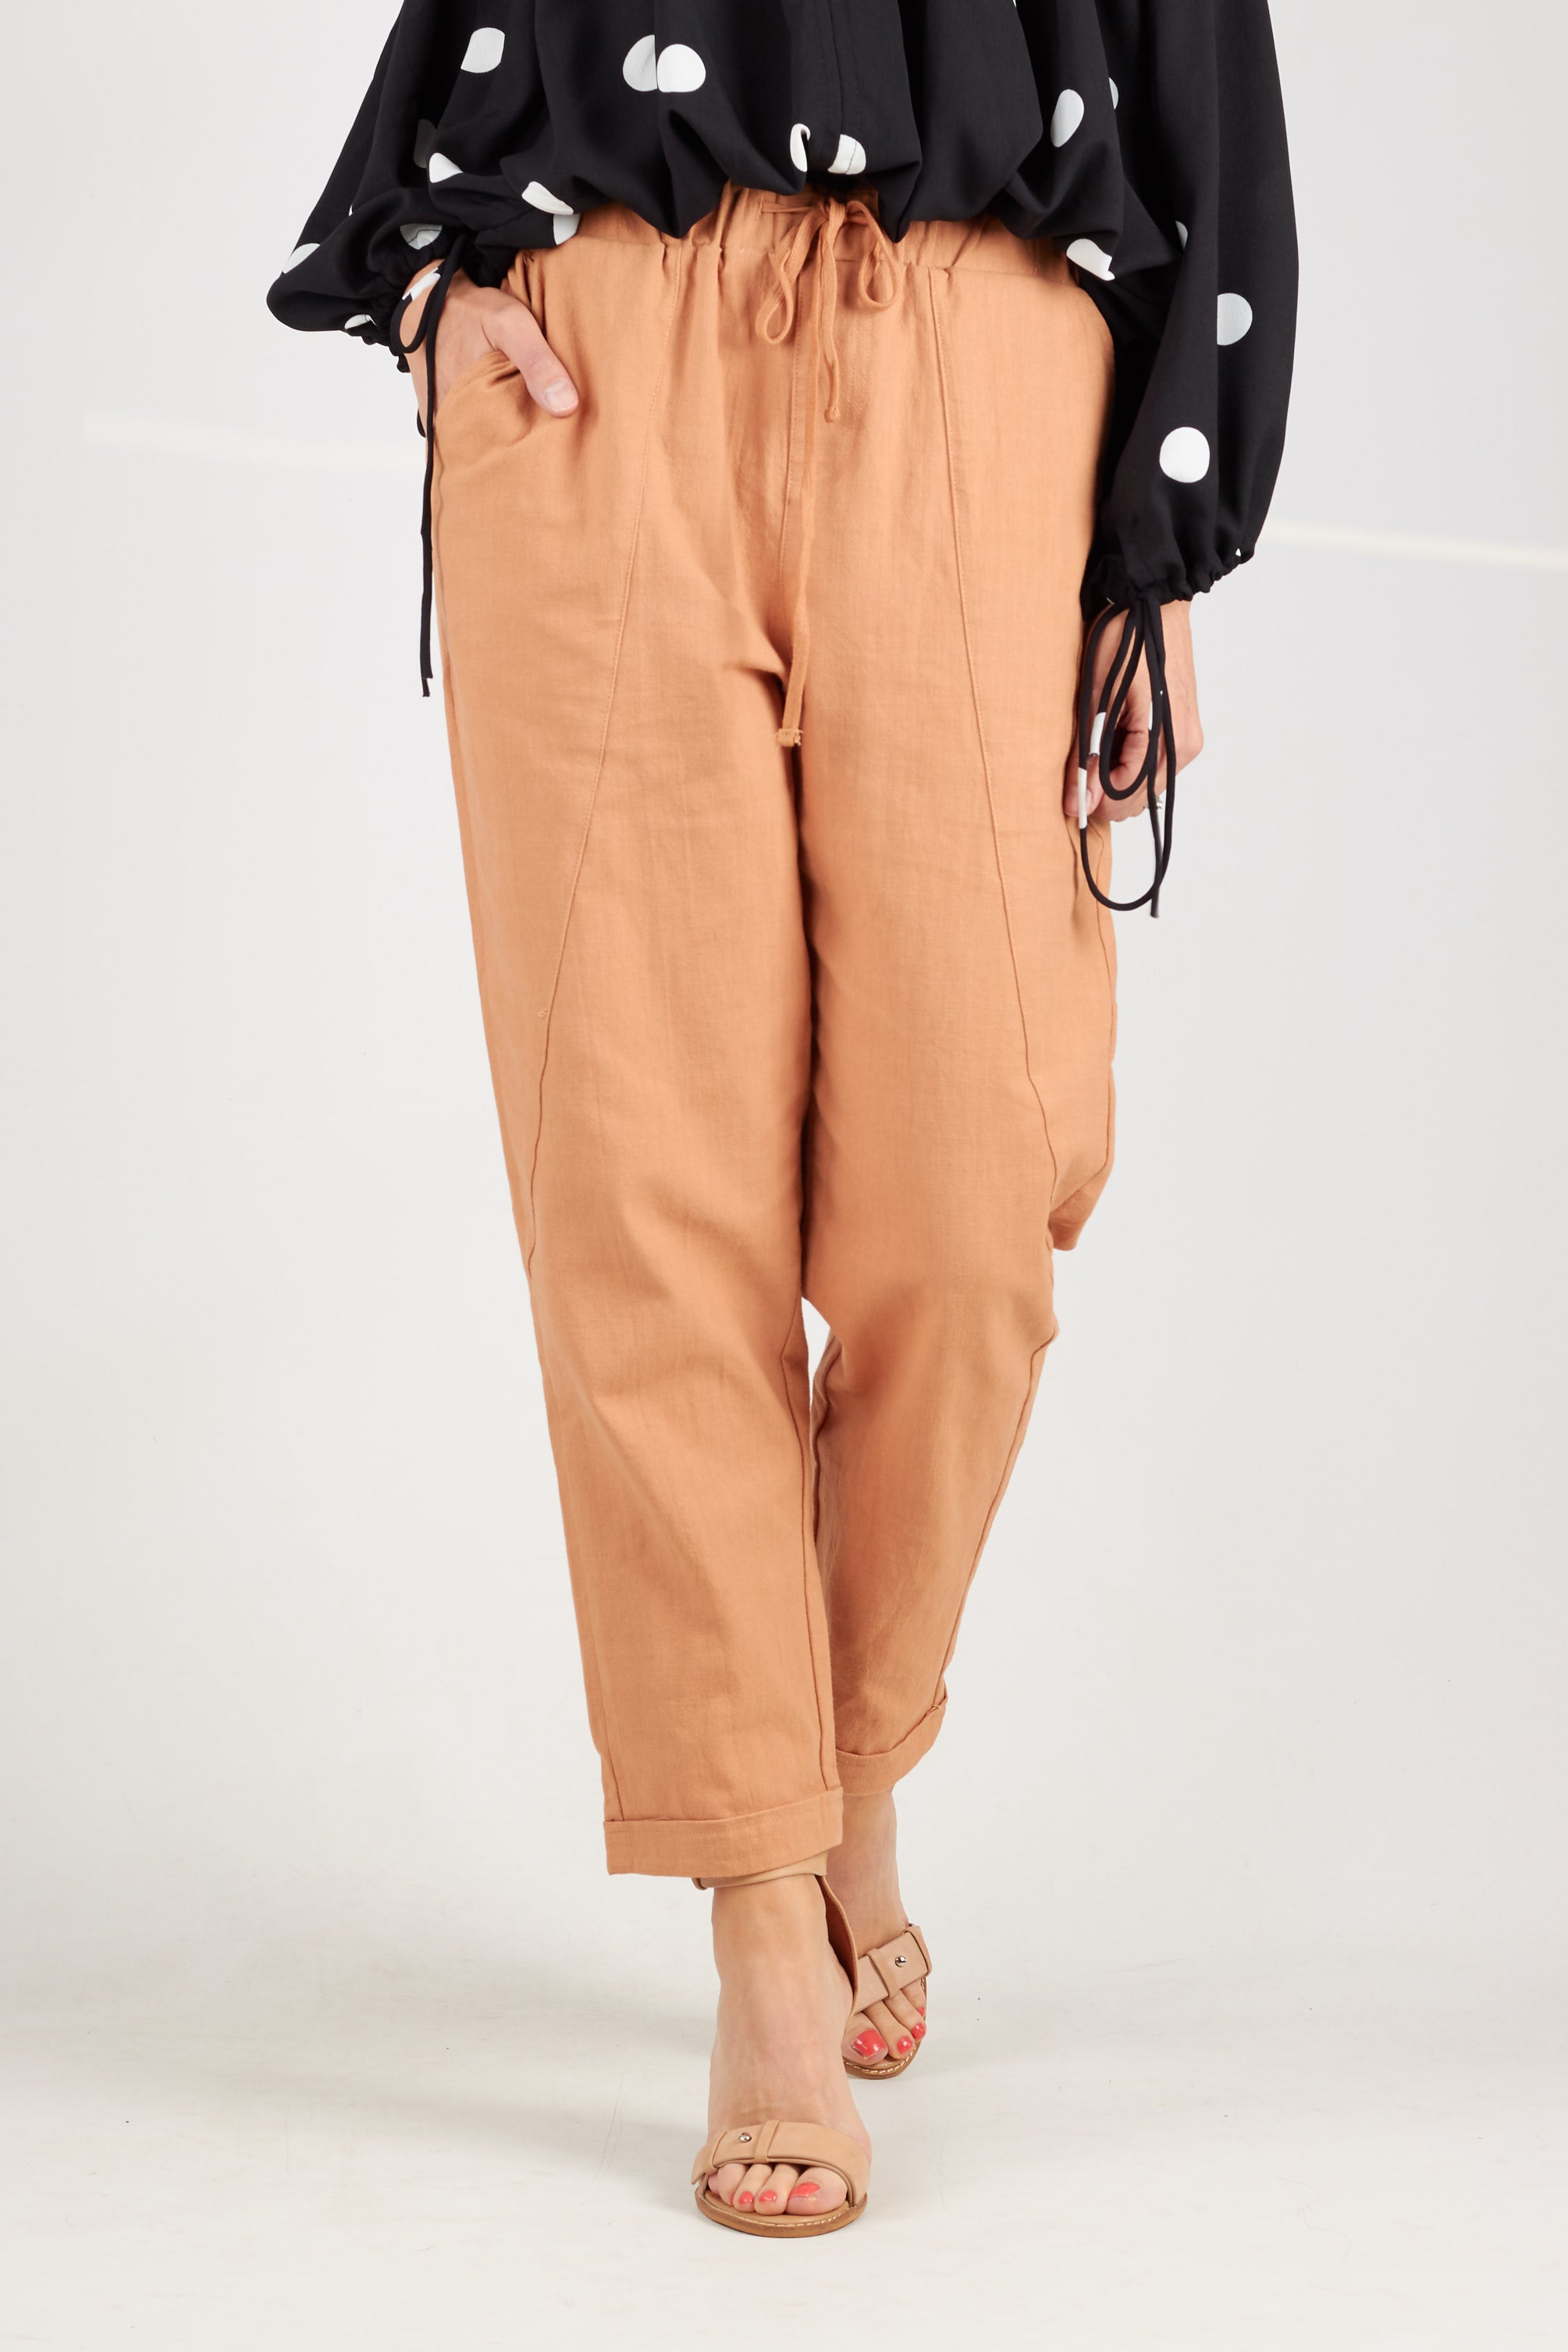 Tan coloured cotton pants with elasticised drawstring waistband and side pockets. Tapered leg with cuffed hem that falls at ankle length.